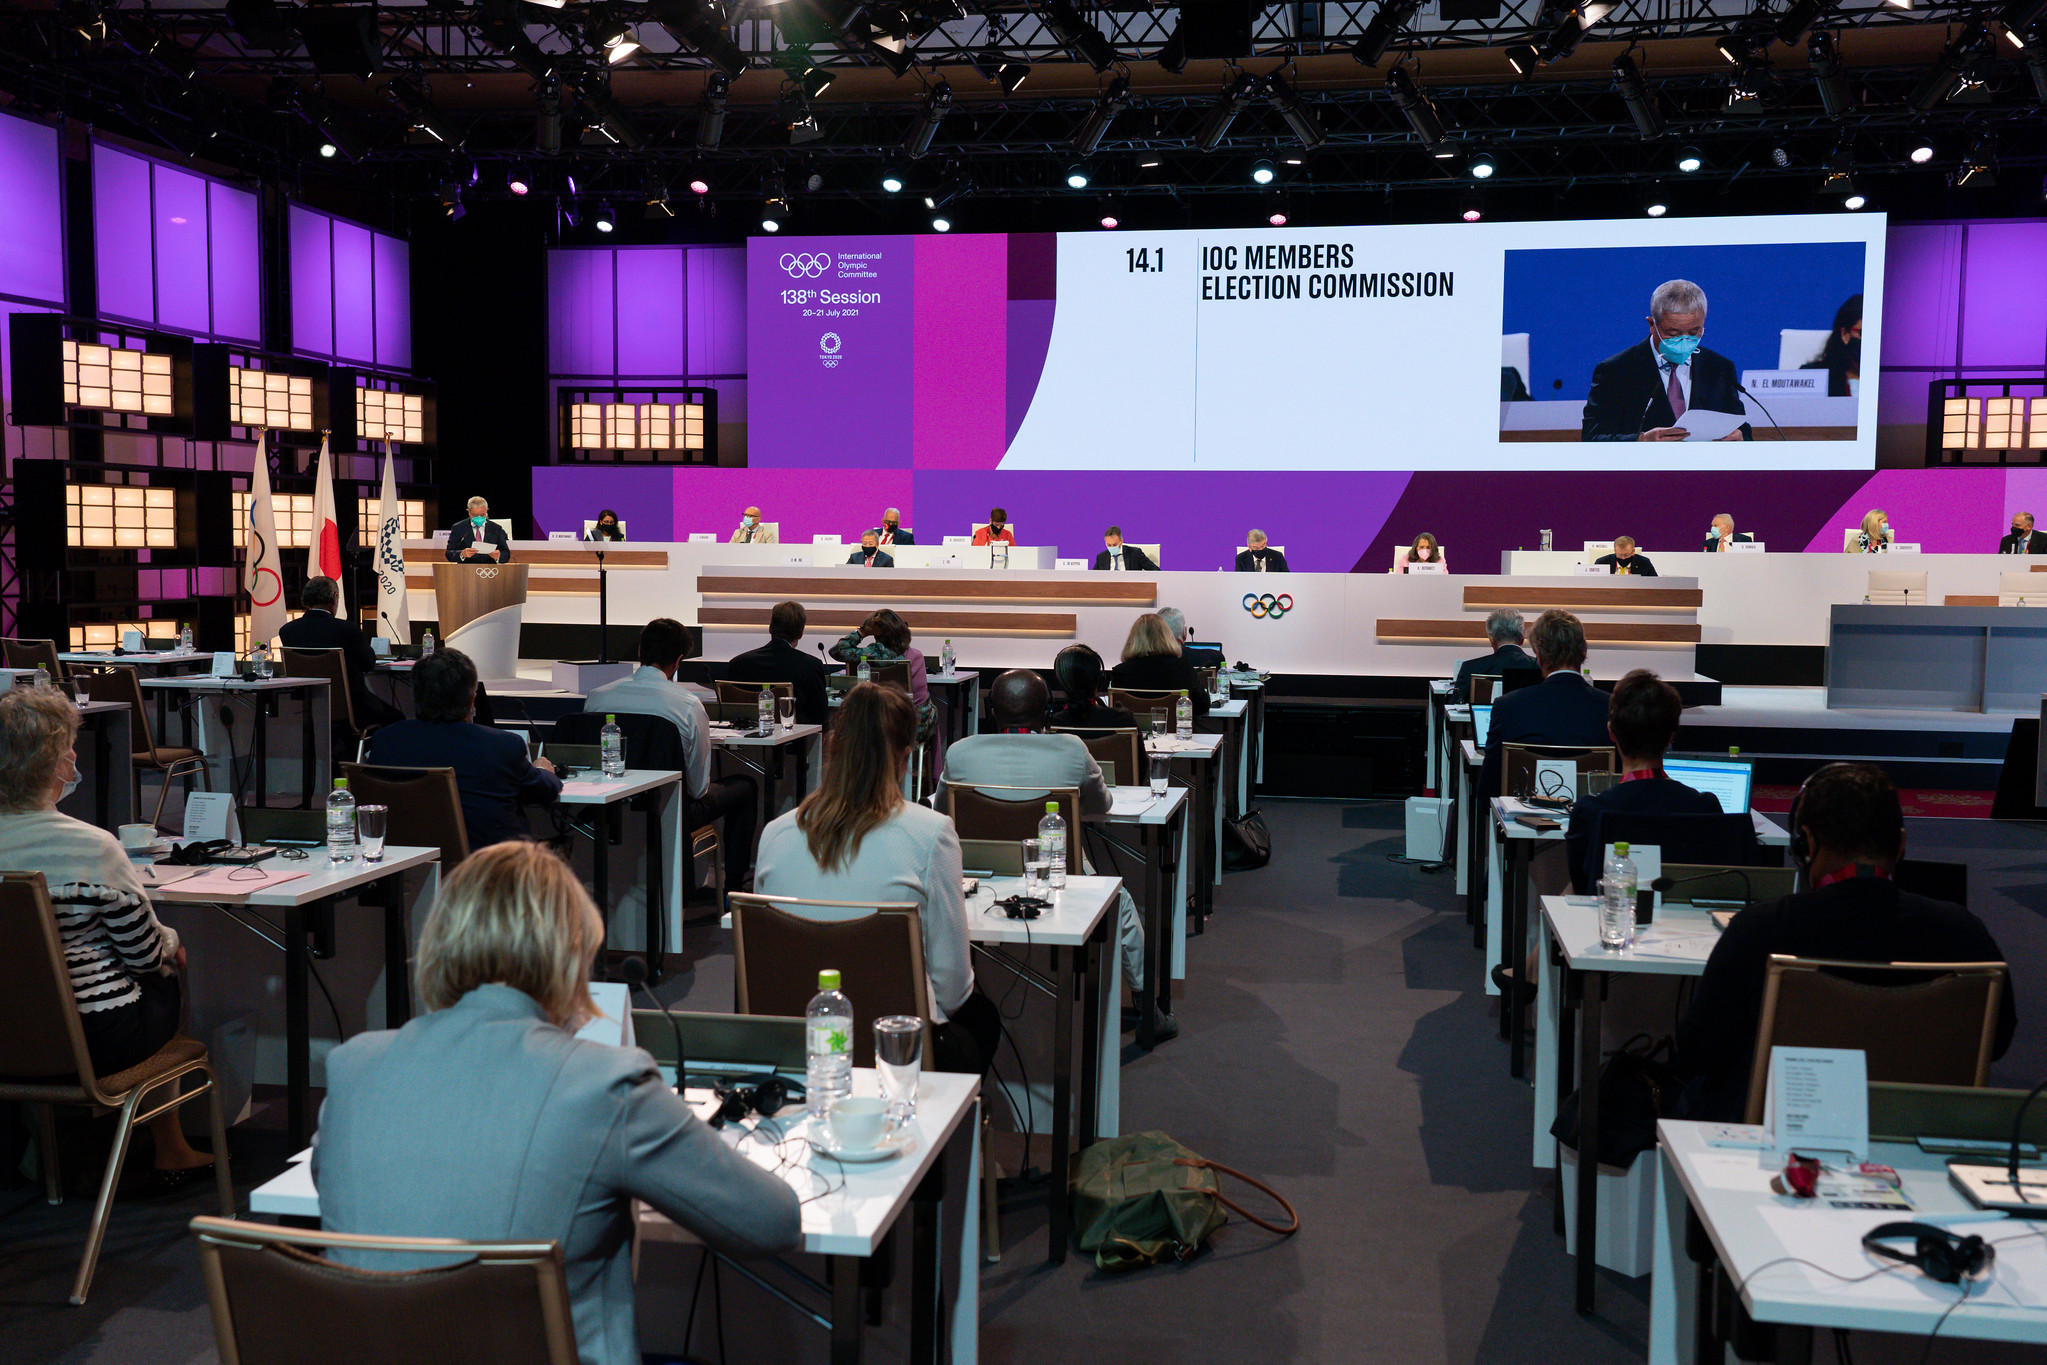 Three IOC Executive Board members were elected during the Session in Tokyo ©IOC